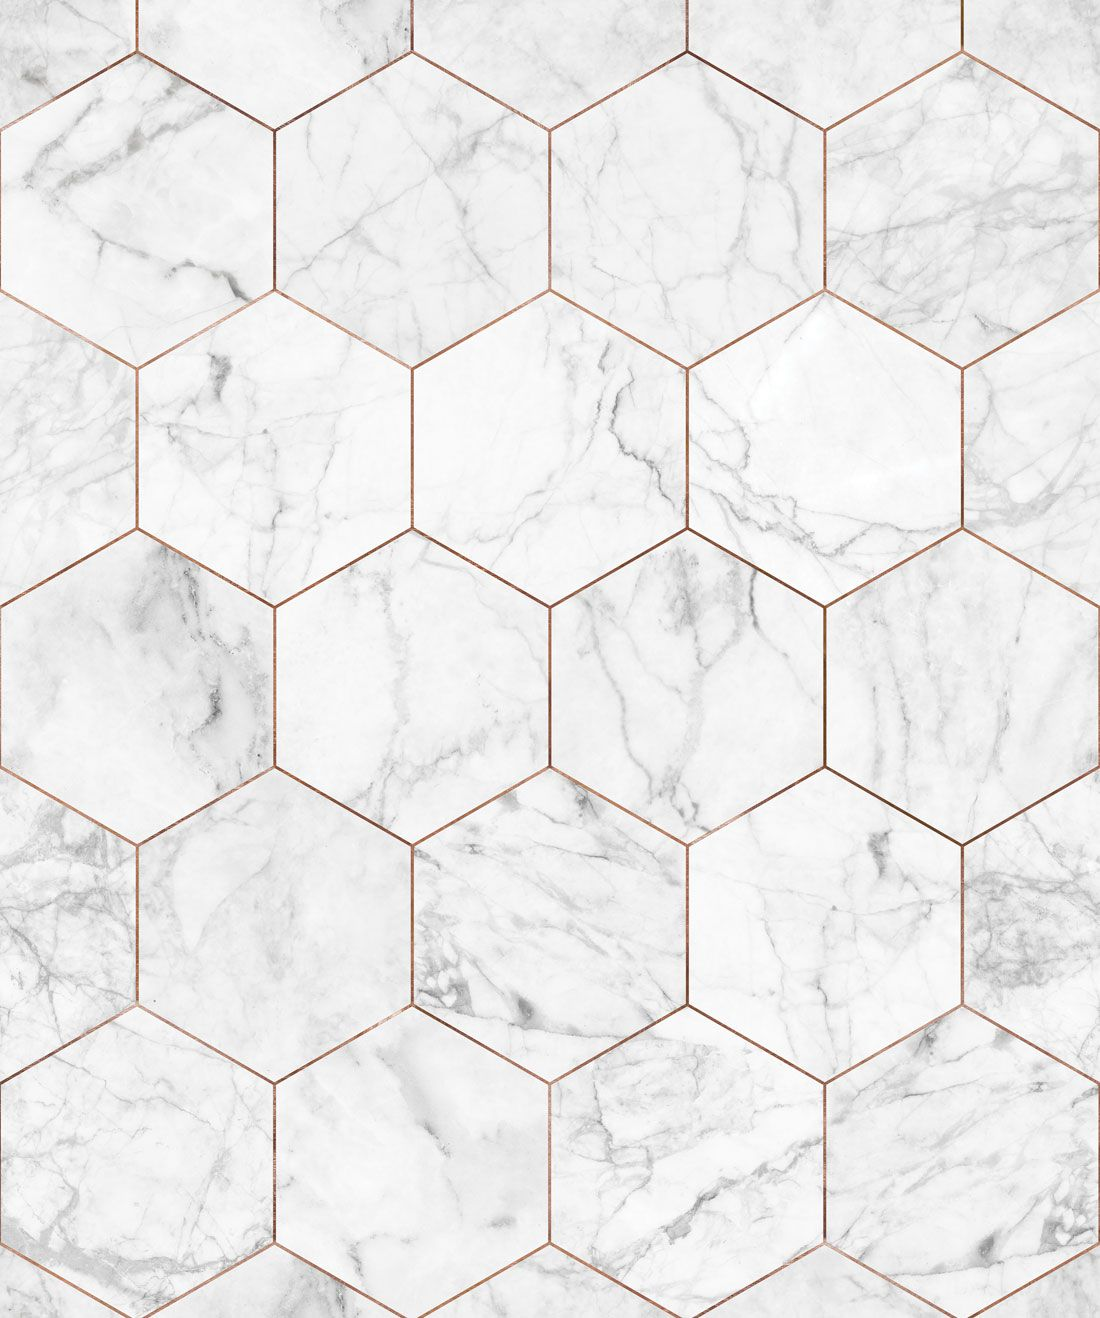 Marble Wallpapers On Wallpaperdog